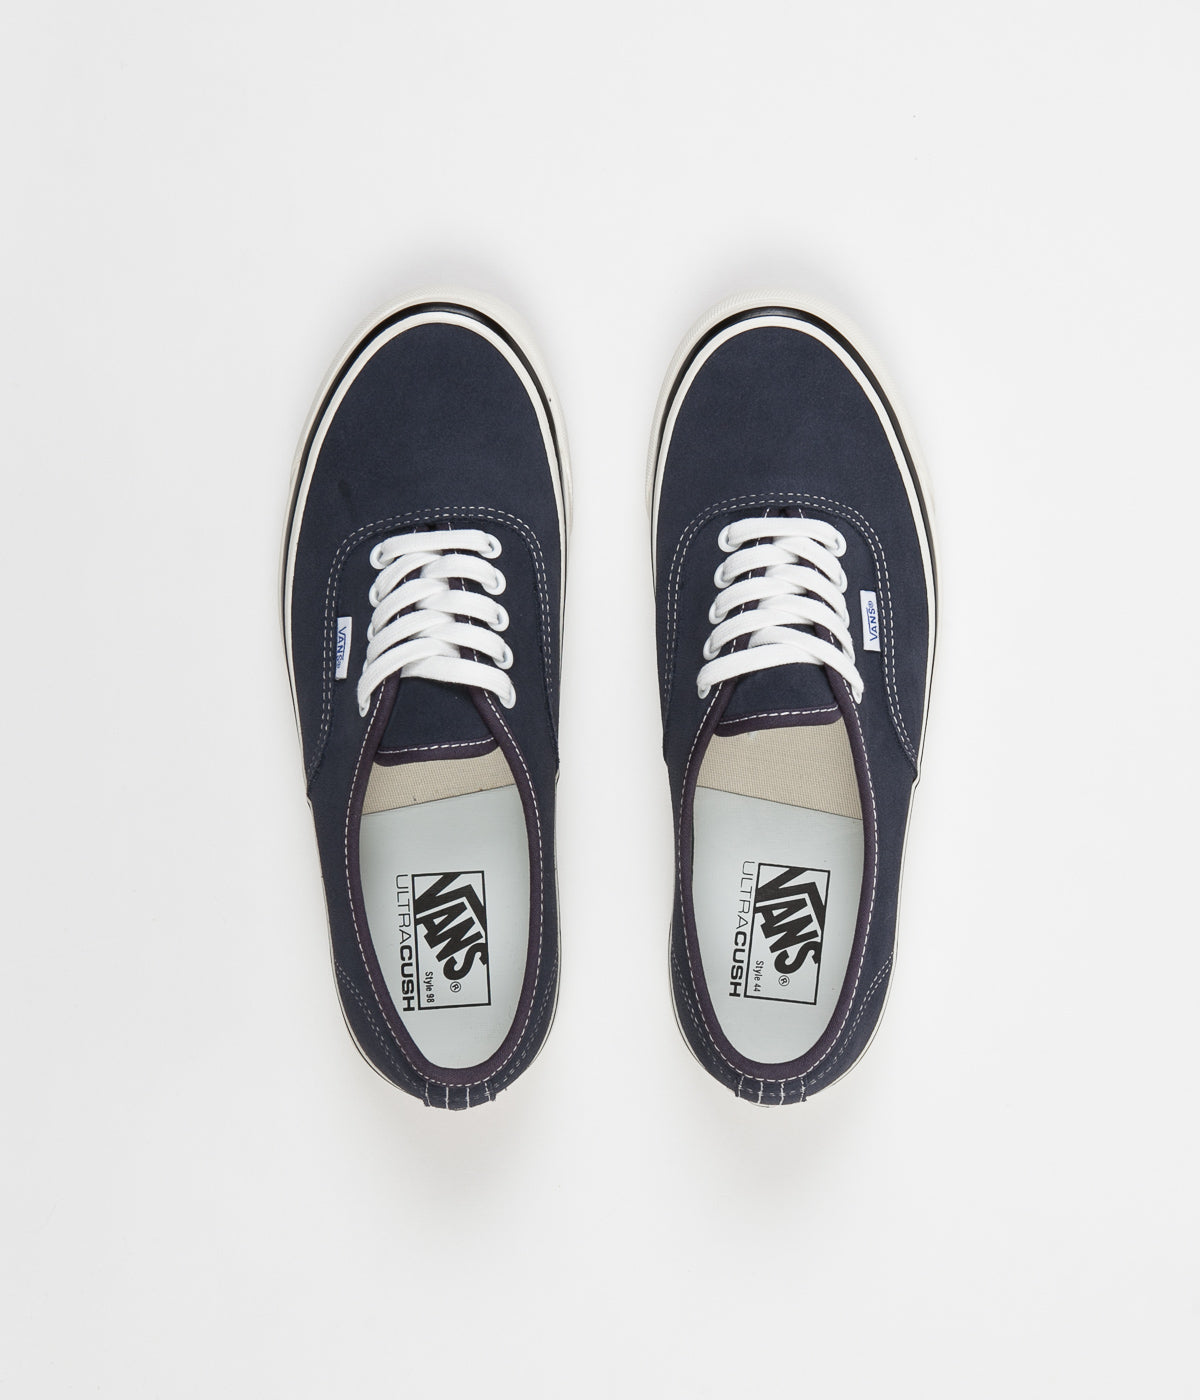 Vans Authentic 44 DX Anaheim Factory Suede Shoes - OG Navy ... beceb61ed4